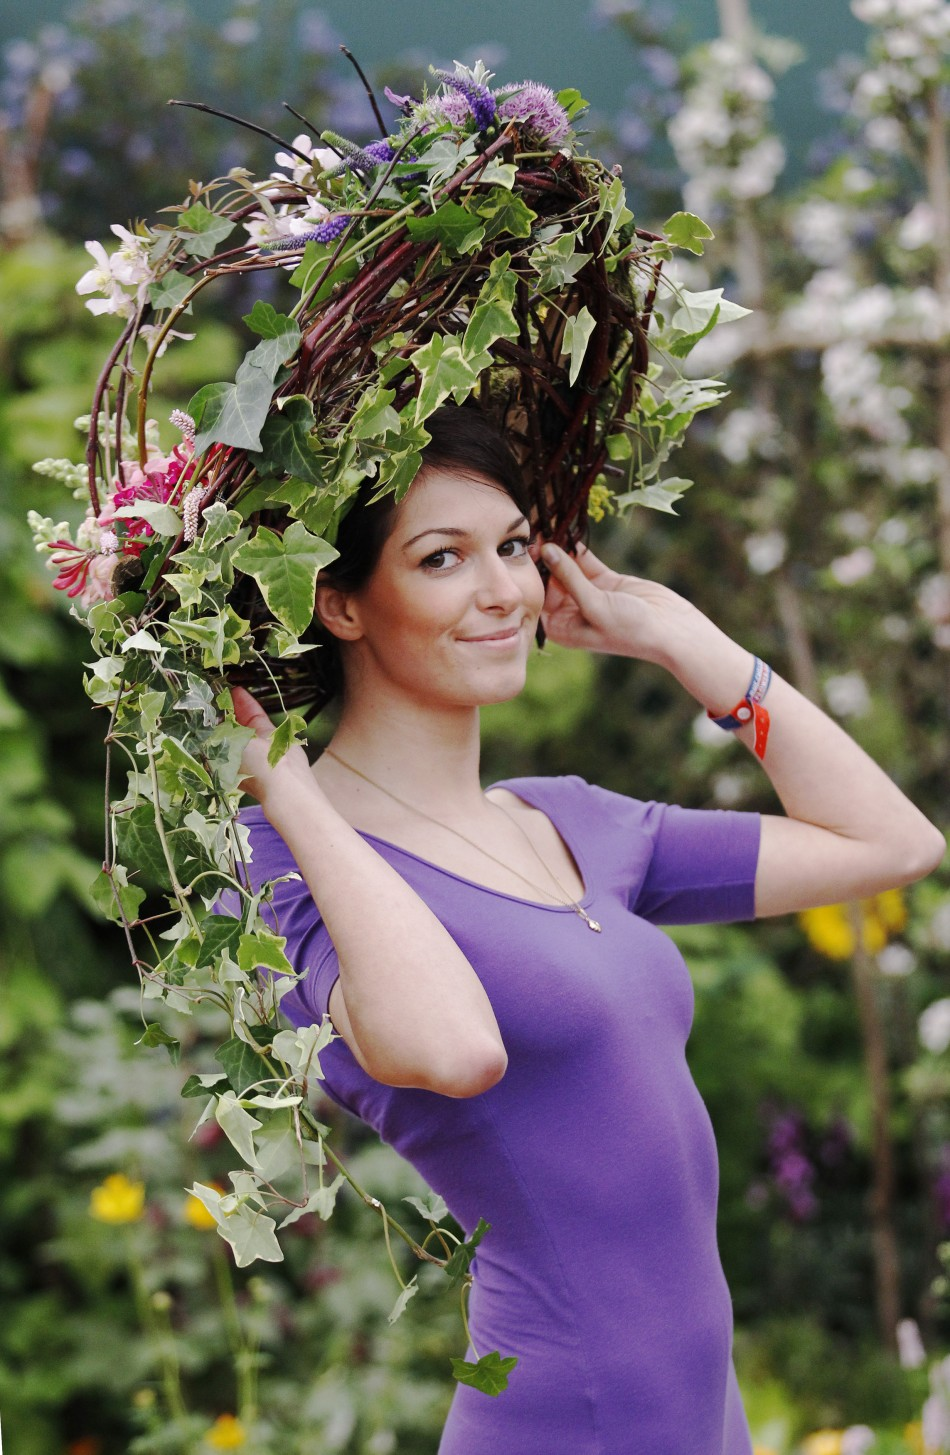 Spectacular Displays at 2012 Chelsea Flower Show